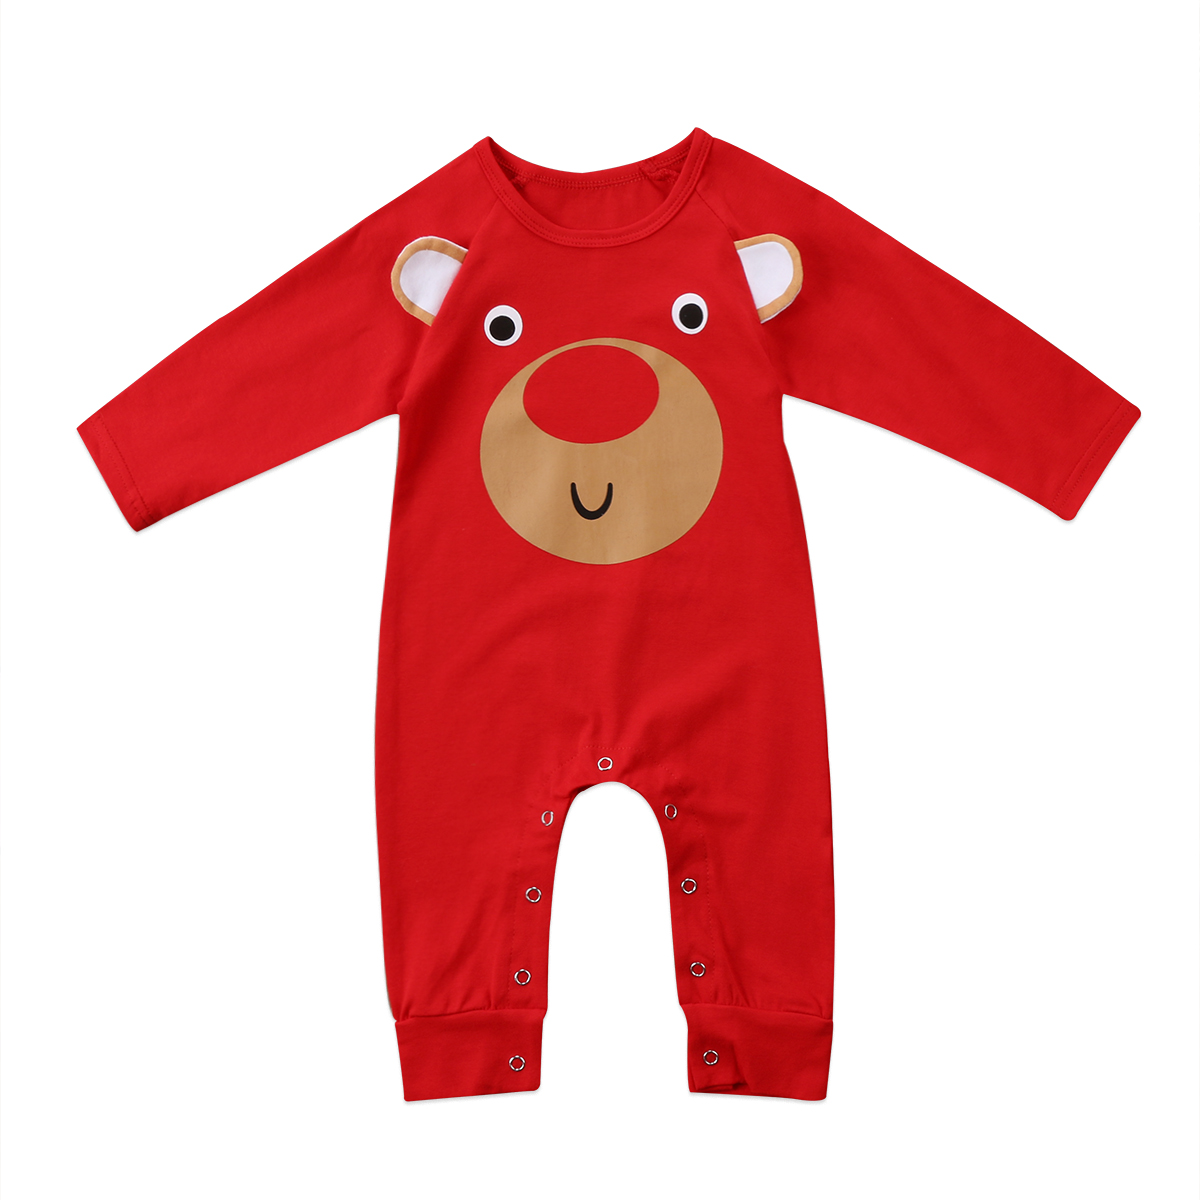 Christmas Newborn Infant Baby Boys Girls 3D Deer Cartoon Romper Jumpsuit Cute Children Long Sleeve Cotton Clothes Outfit newborn baby backless floral jumpsuit infant girls romper sleeveless outfit